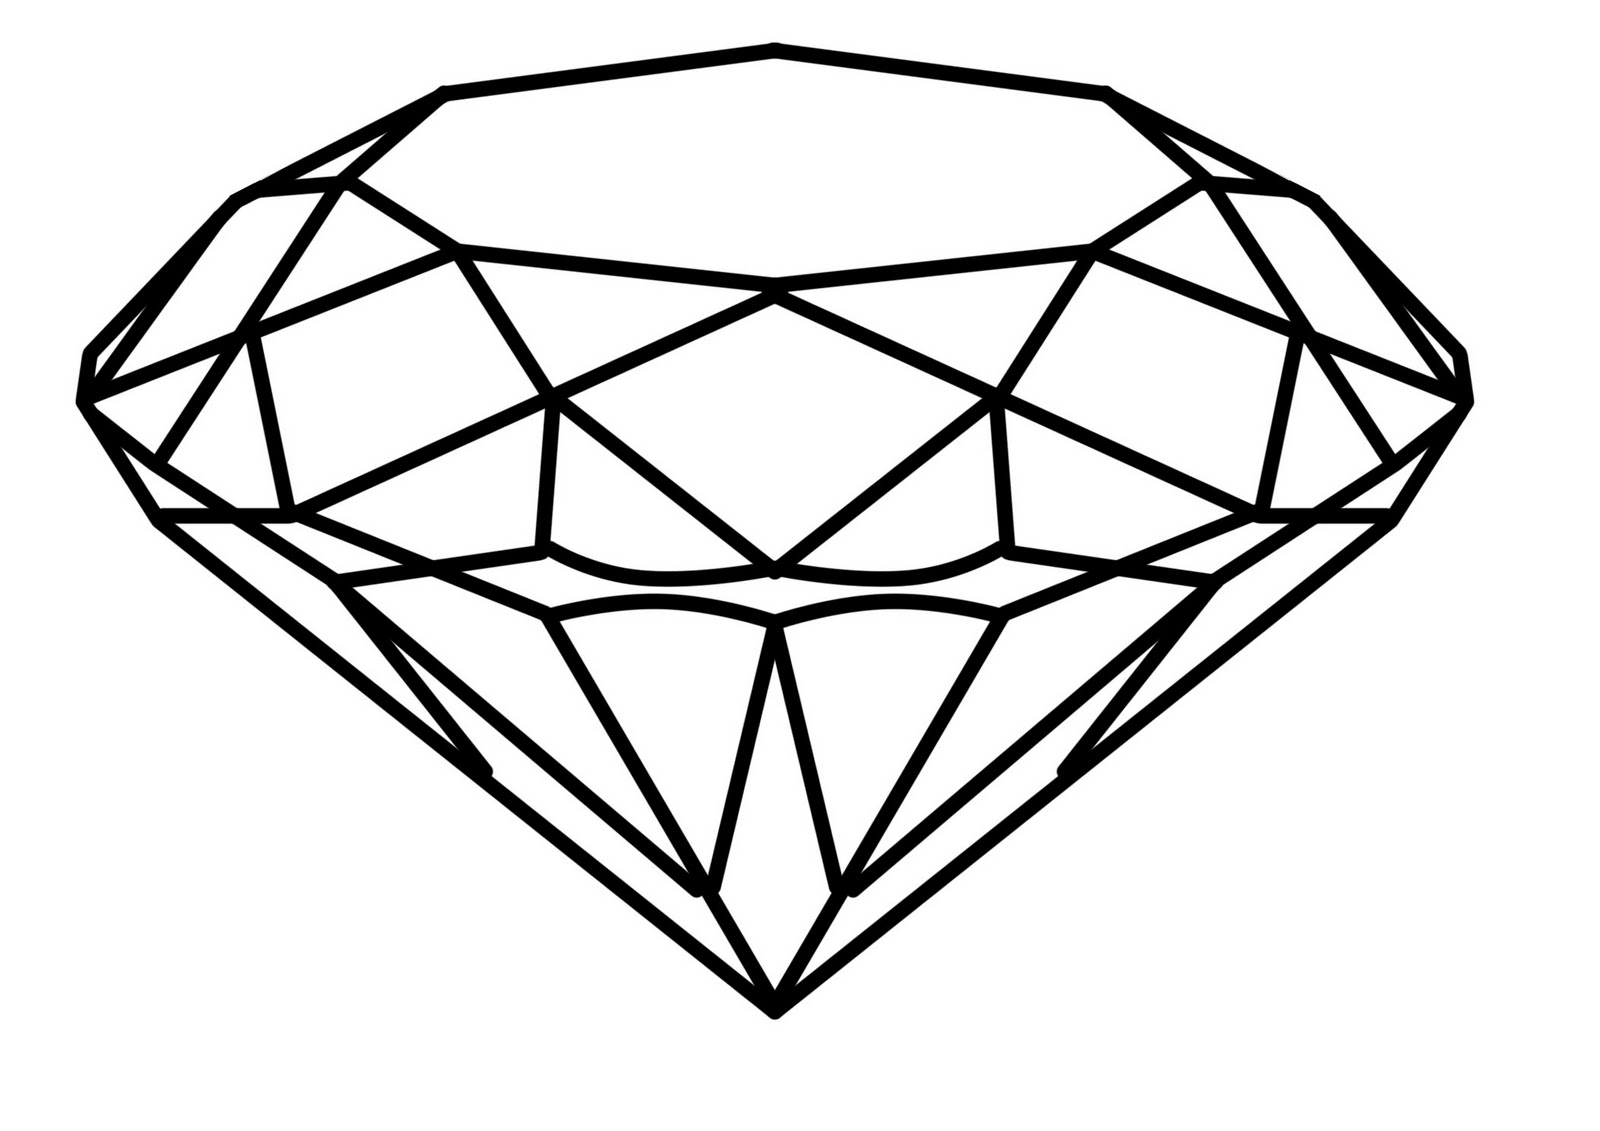 Drawing With Lines And Shapes : How to diamond drawings design practice